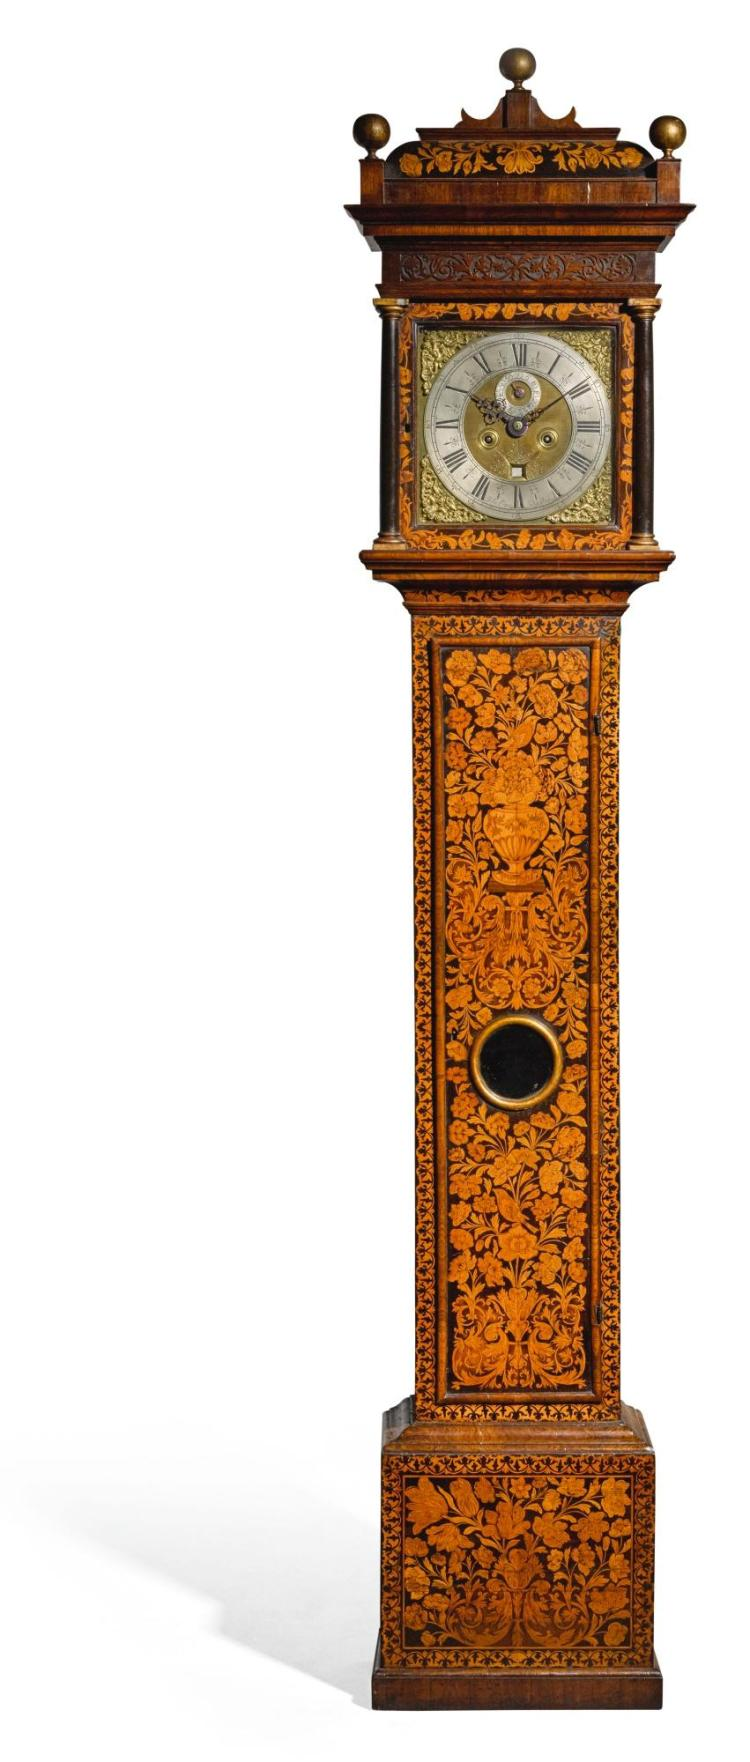 A WILLIAM III WALNUT MARQUETRY LONGCASE CLOCK, JOHN CLOWES, LONDON, CIRCA 1700 |